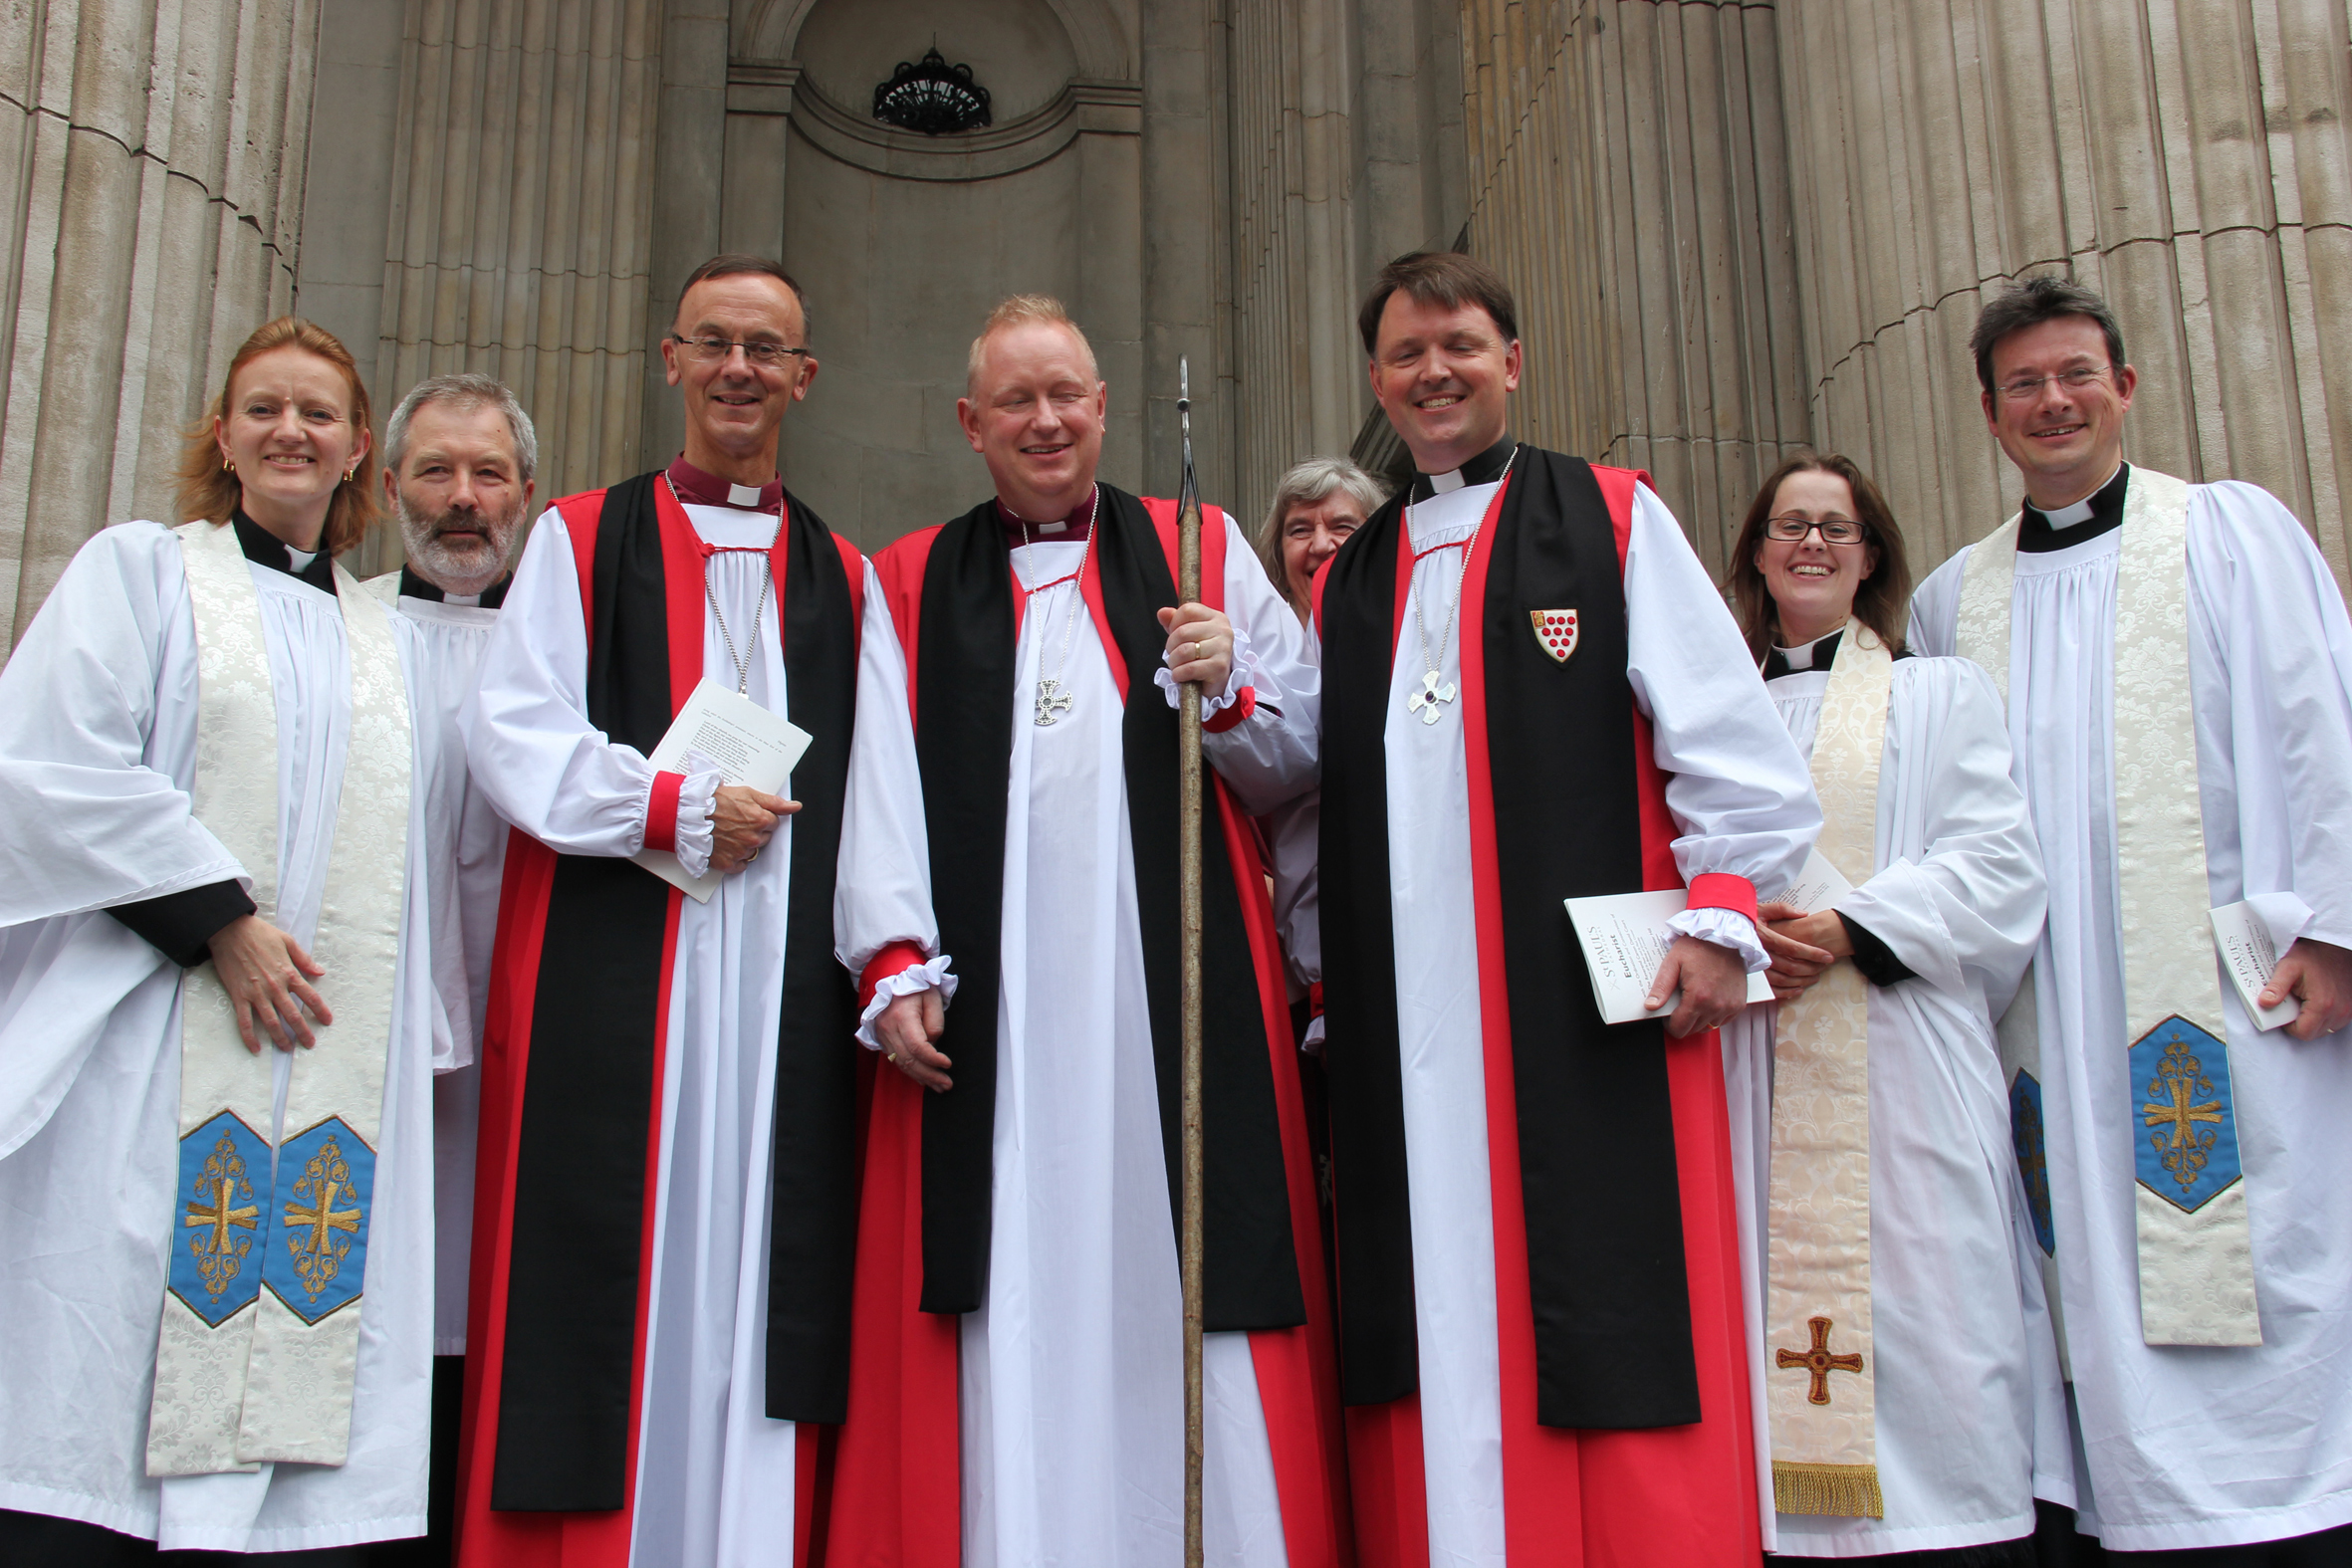 City will remain close to former Archdeacon's heart as he becomes Bishop of Colchester